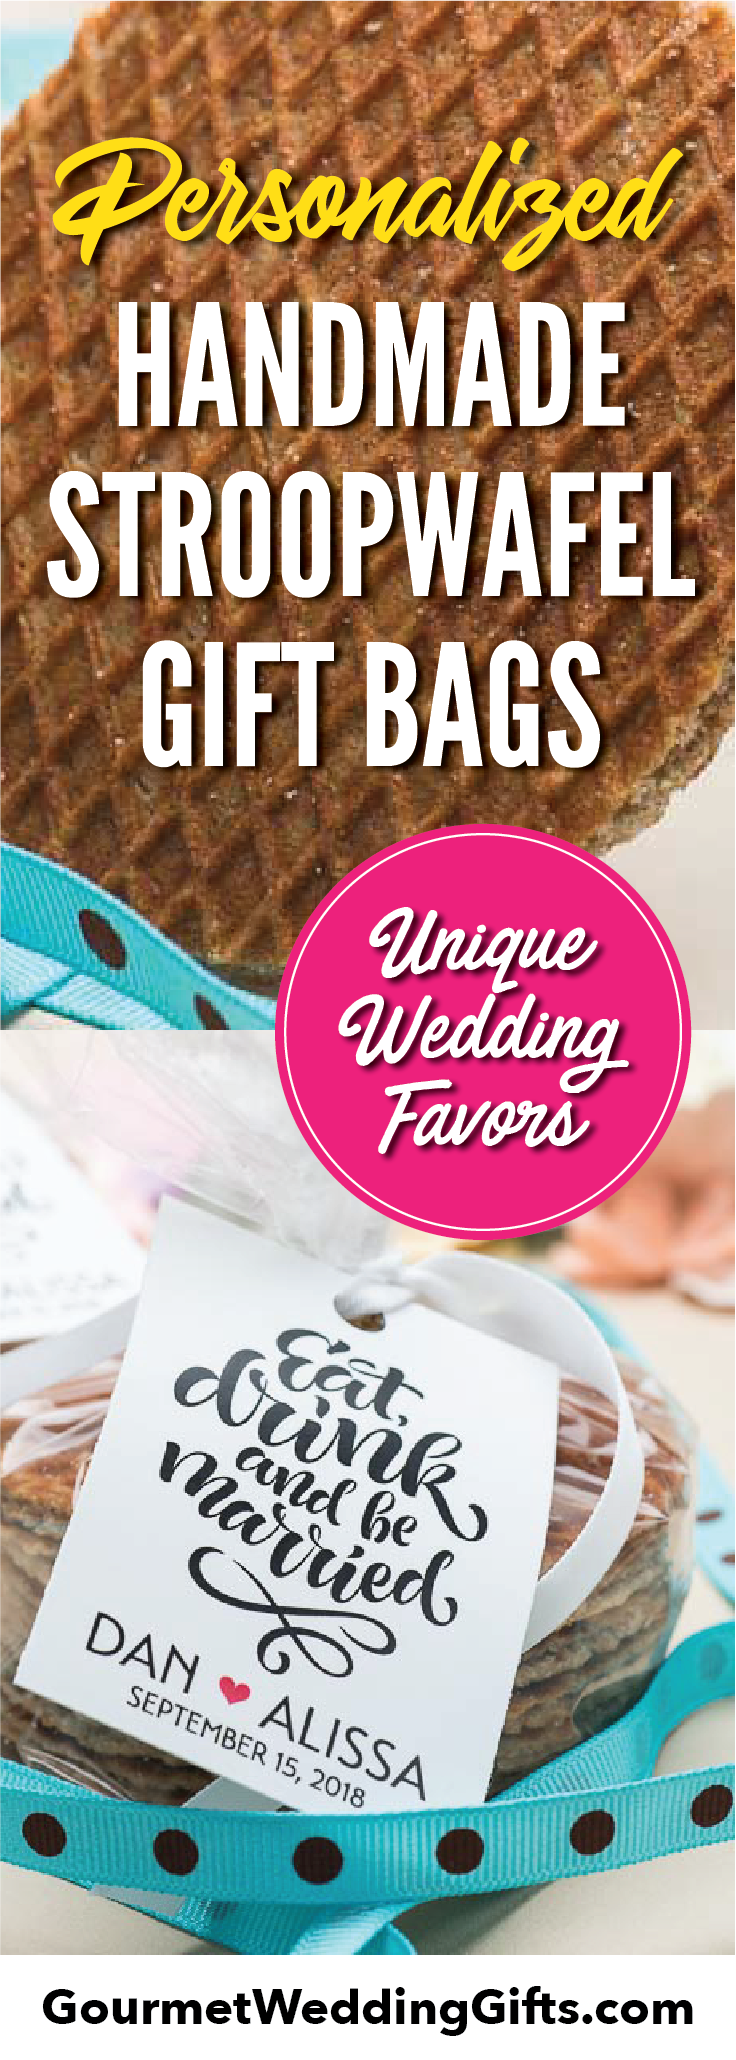 Personalized Stroopwafel Gift Pack Wedding Favors | Unique Edible ...